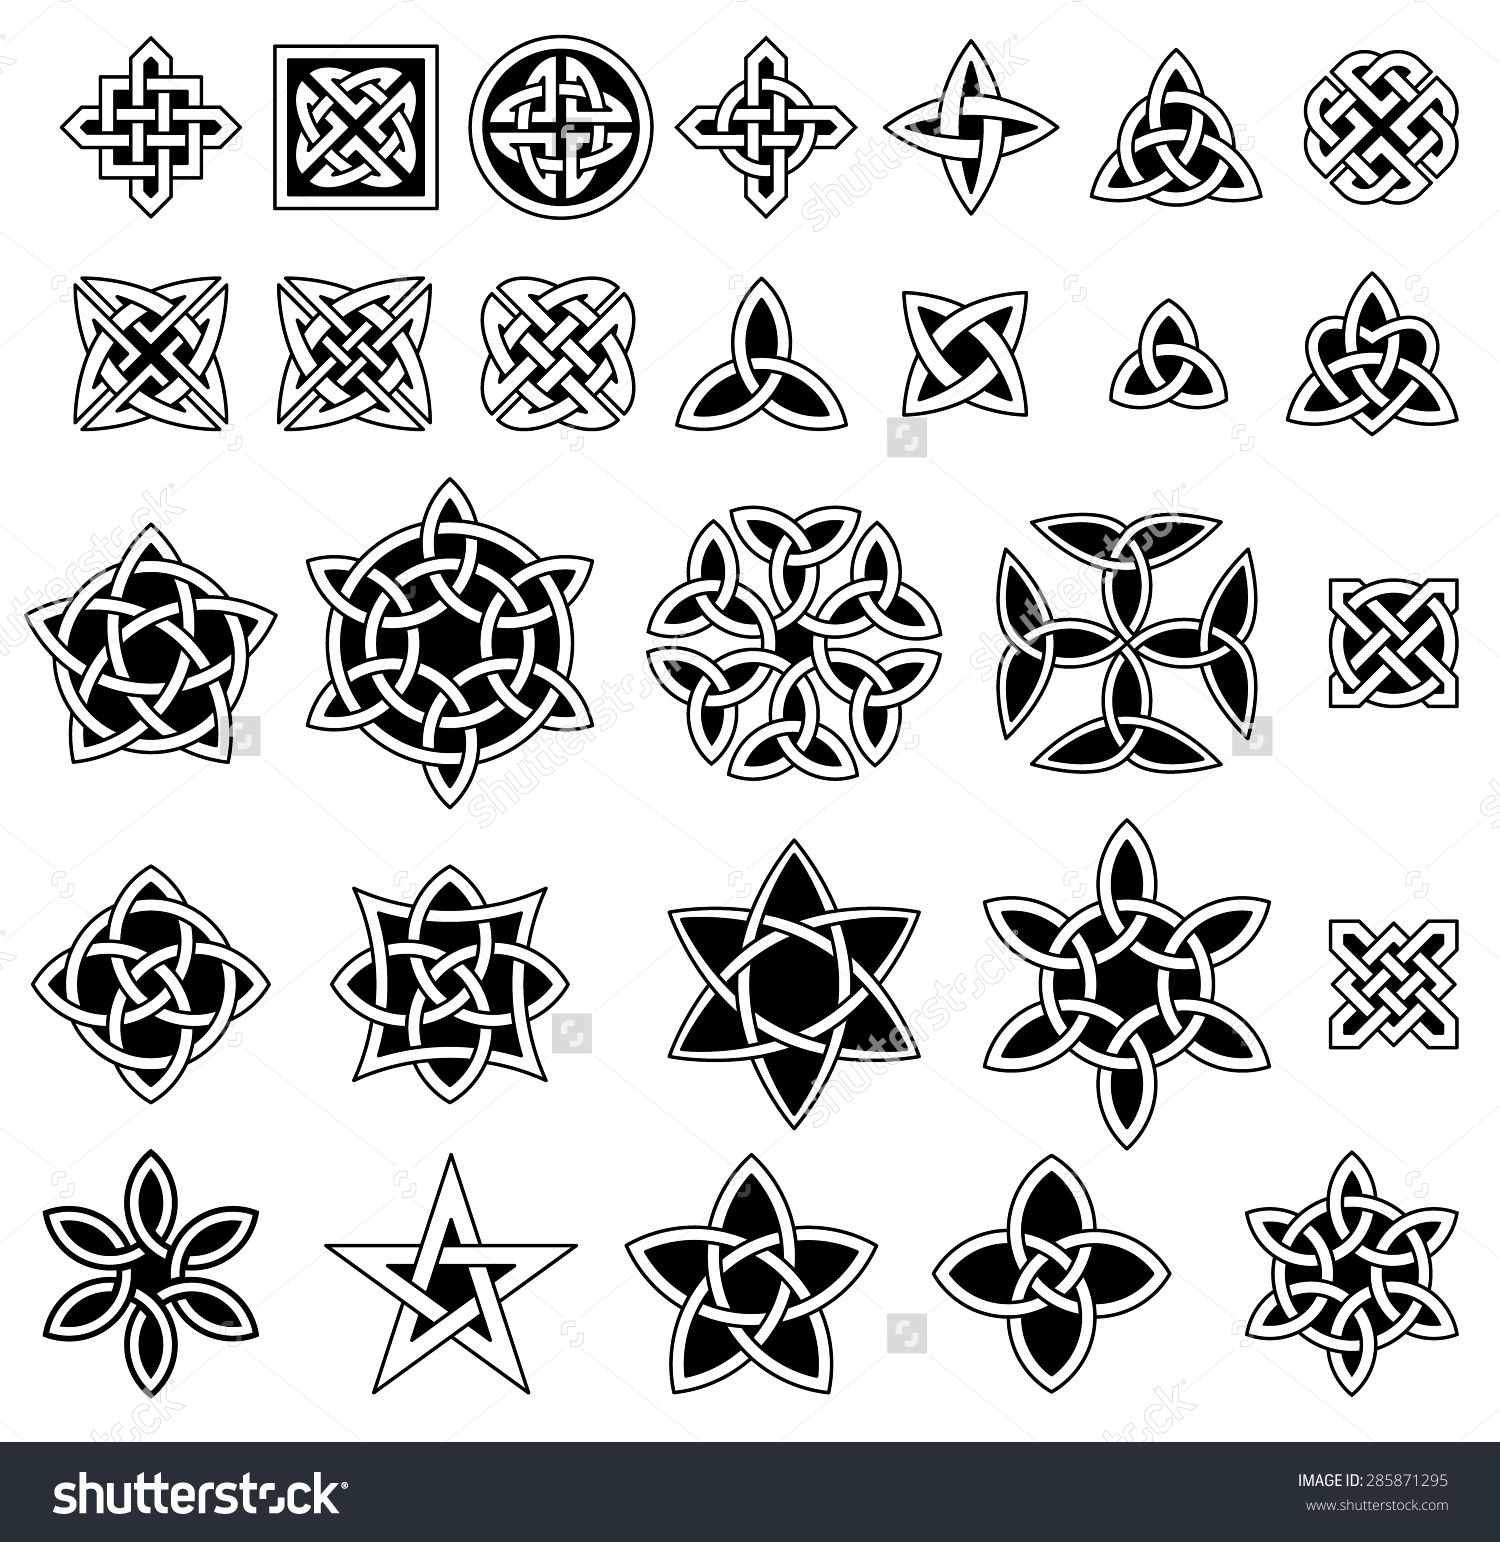 Image result for trinity knot tattoos trinity knot pinterest collection of celtic knots decorative symbols decorative buycottarizona Image collections